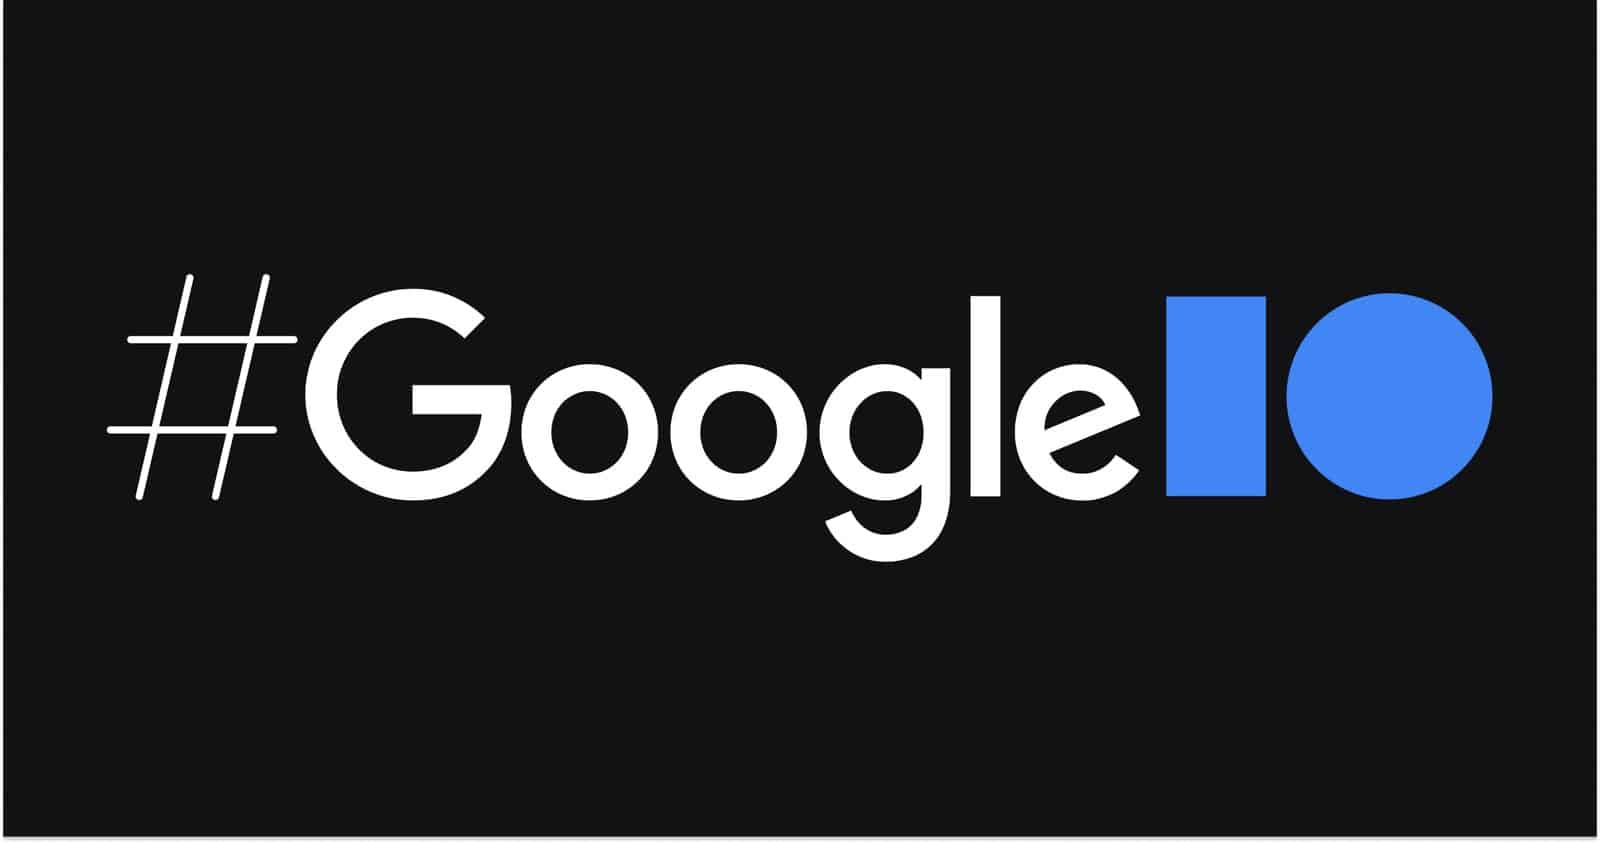 Google I/O 2021 Schedule Hints At Major Android 12 Focus & More